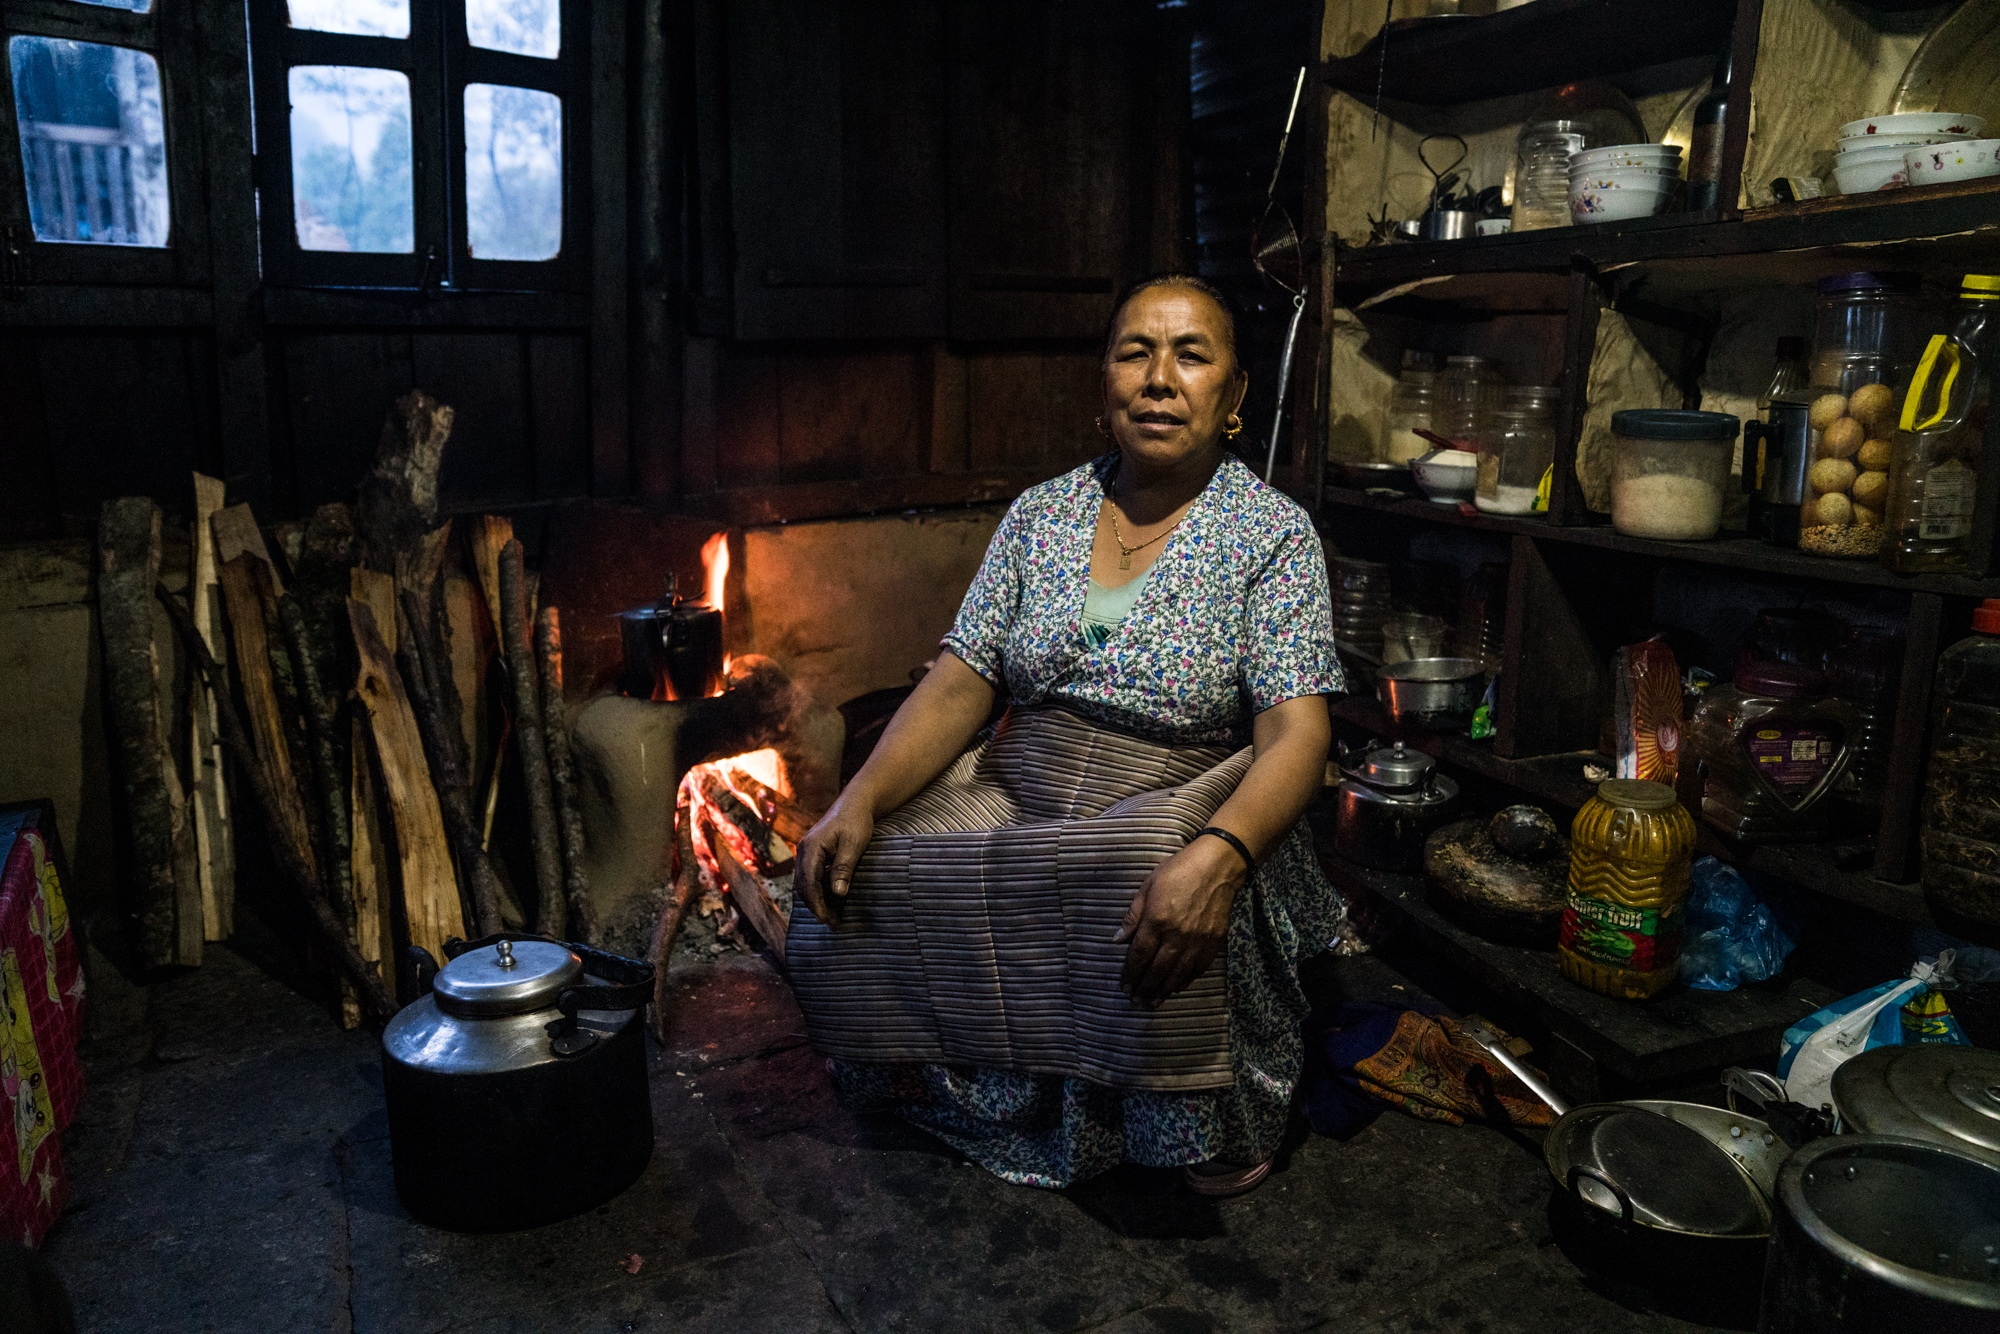 An elderly Nepali woman preparing dinner with her wood-fired cooking stove. Nepal.